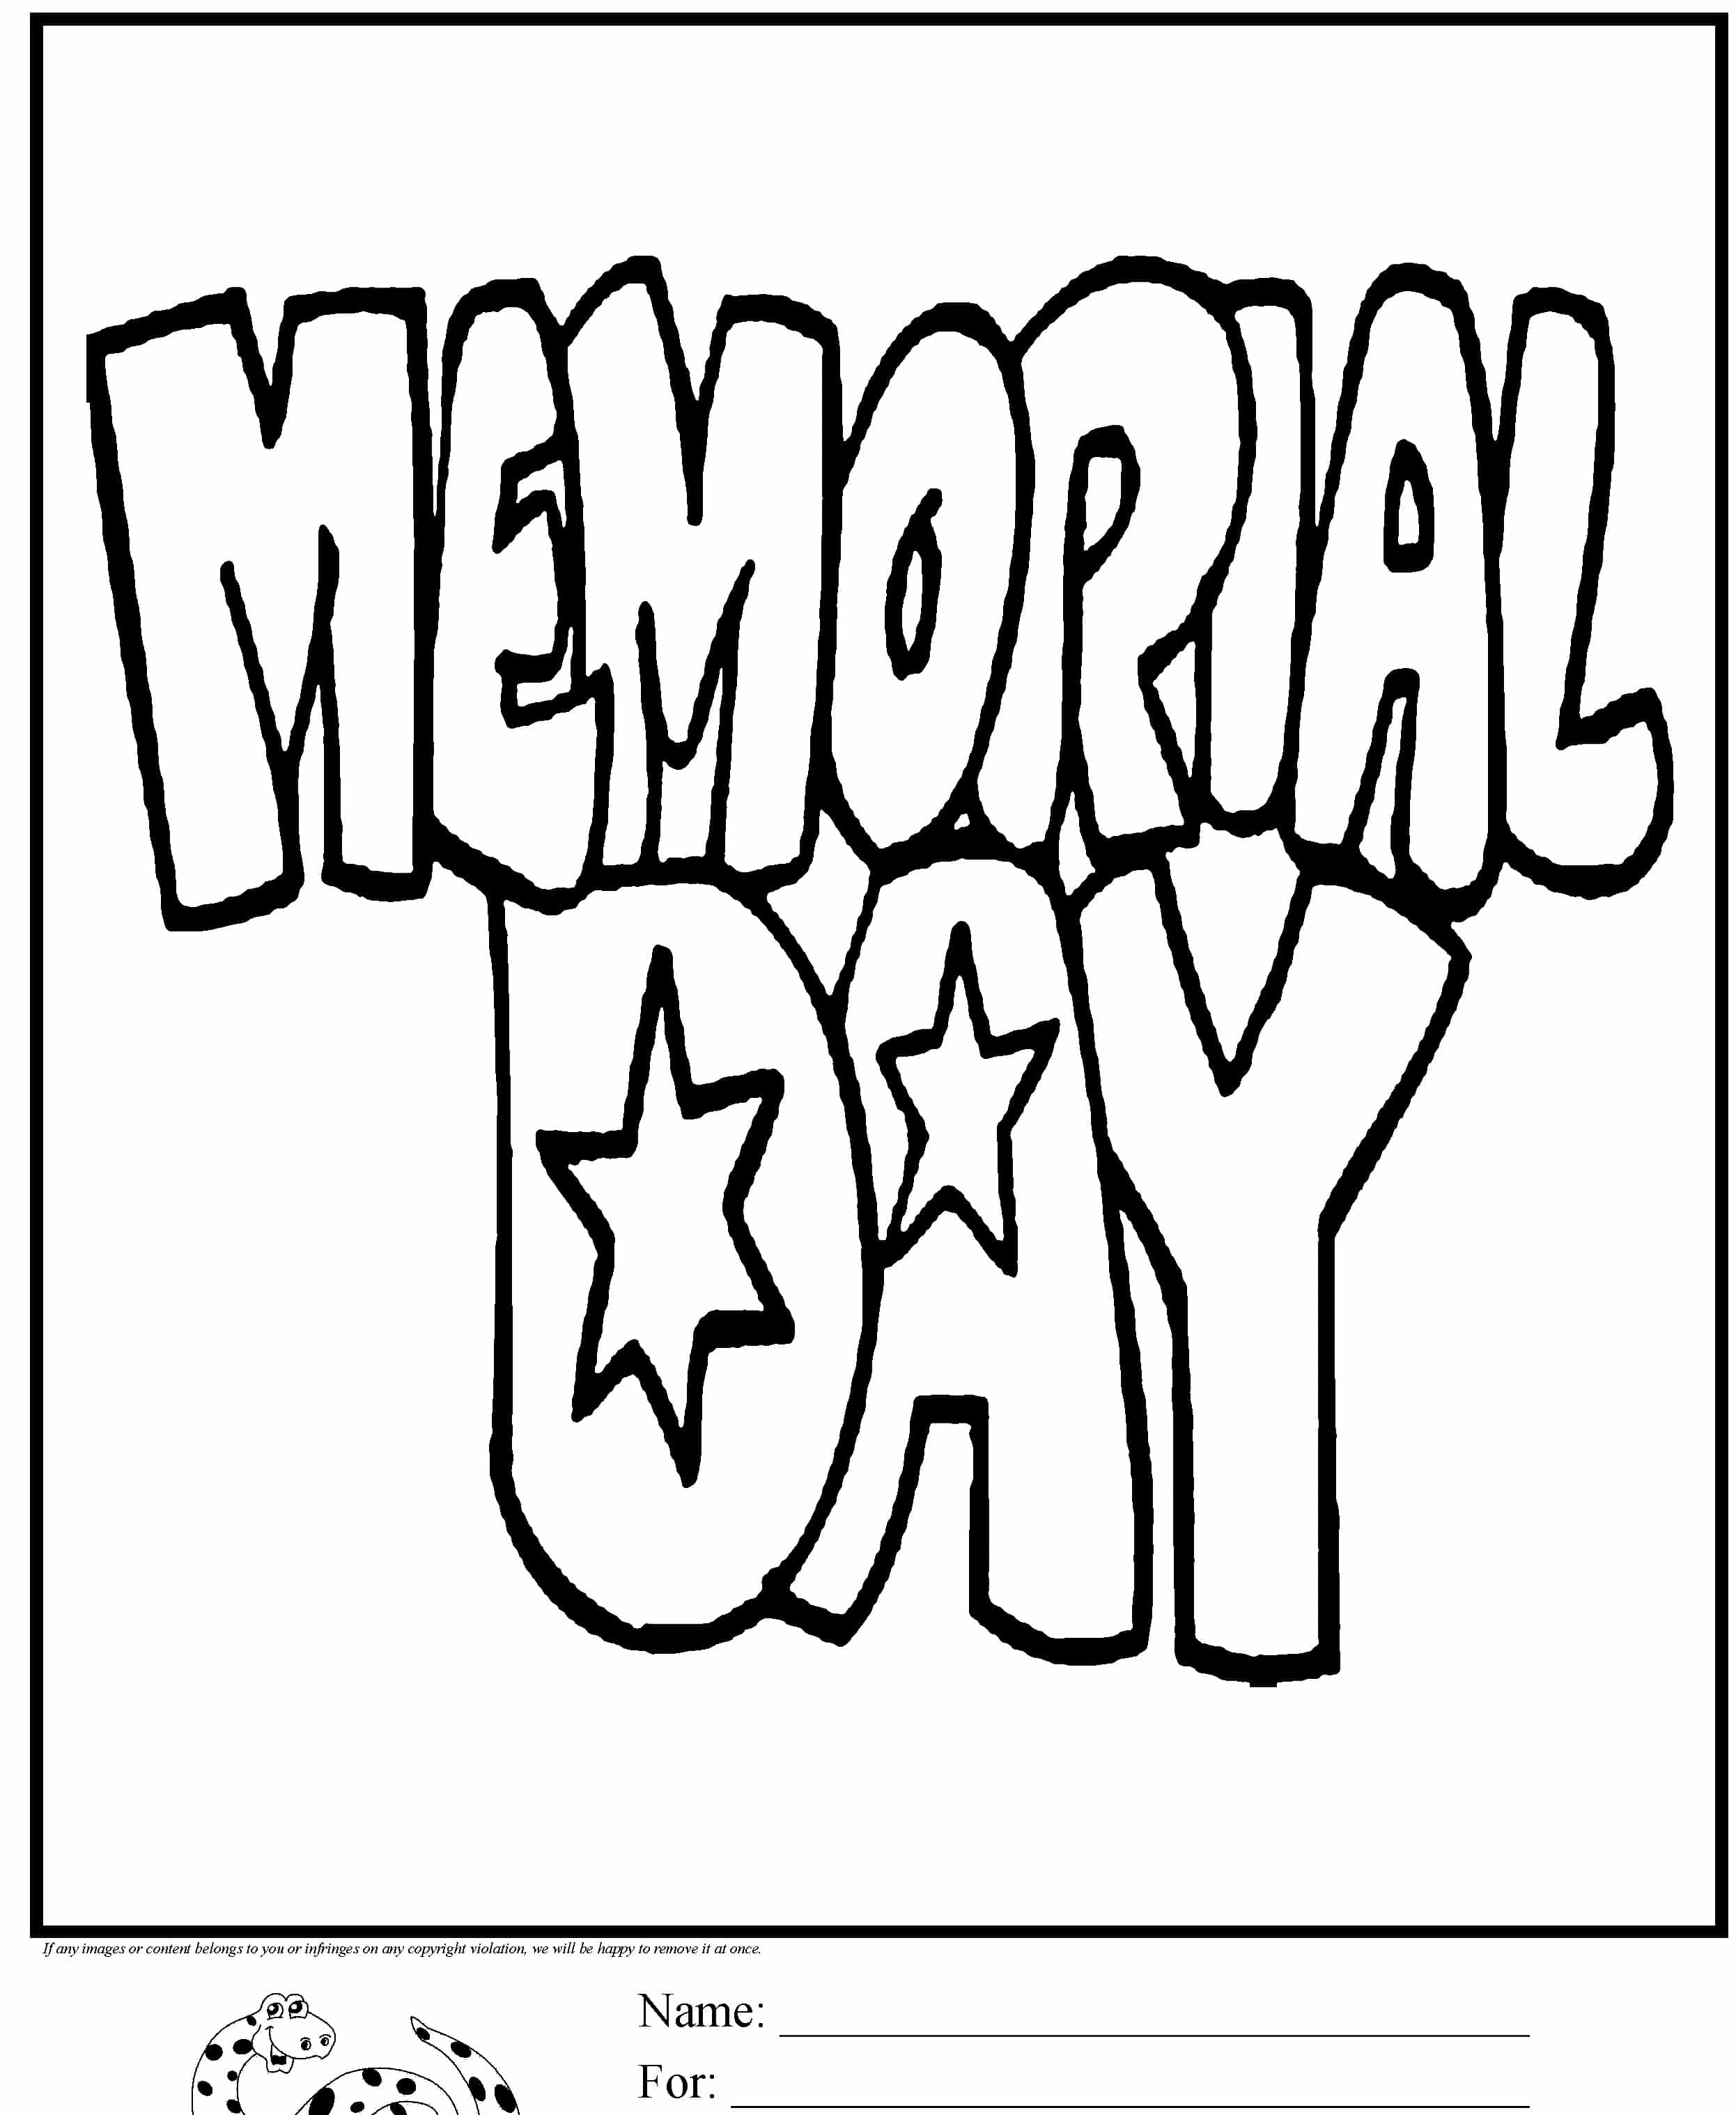 memorial day coloring sheets free memorial day coloring pages preschool free nature coloring sheets free memorial - Free Coloring Pages Preschool